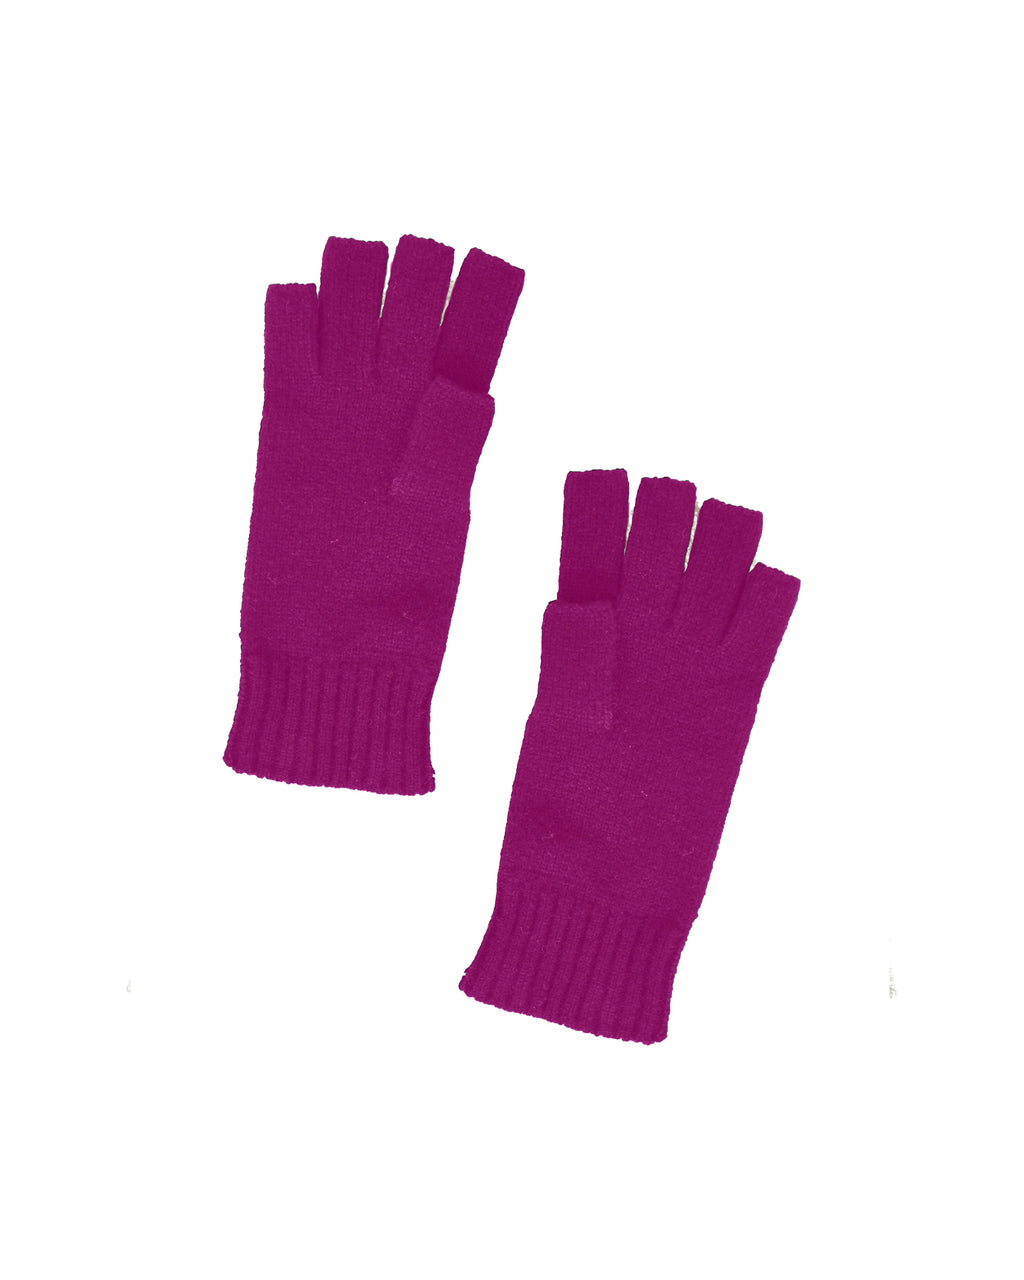 CA18510 - CASHMERE GLOVE - accessories - winter wear - Crafted from 100% cashmere, these classic gloves have finger cutouts so your hands can stay warm but still be accessible. Add 1 line break Stylist tip: Pair with the matching hat and scarf for a complete winter set.